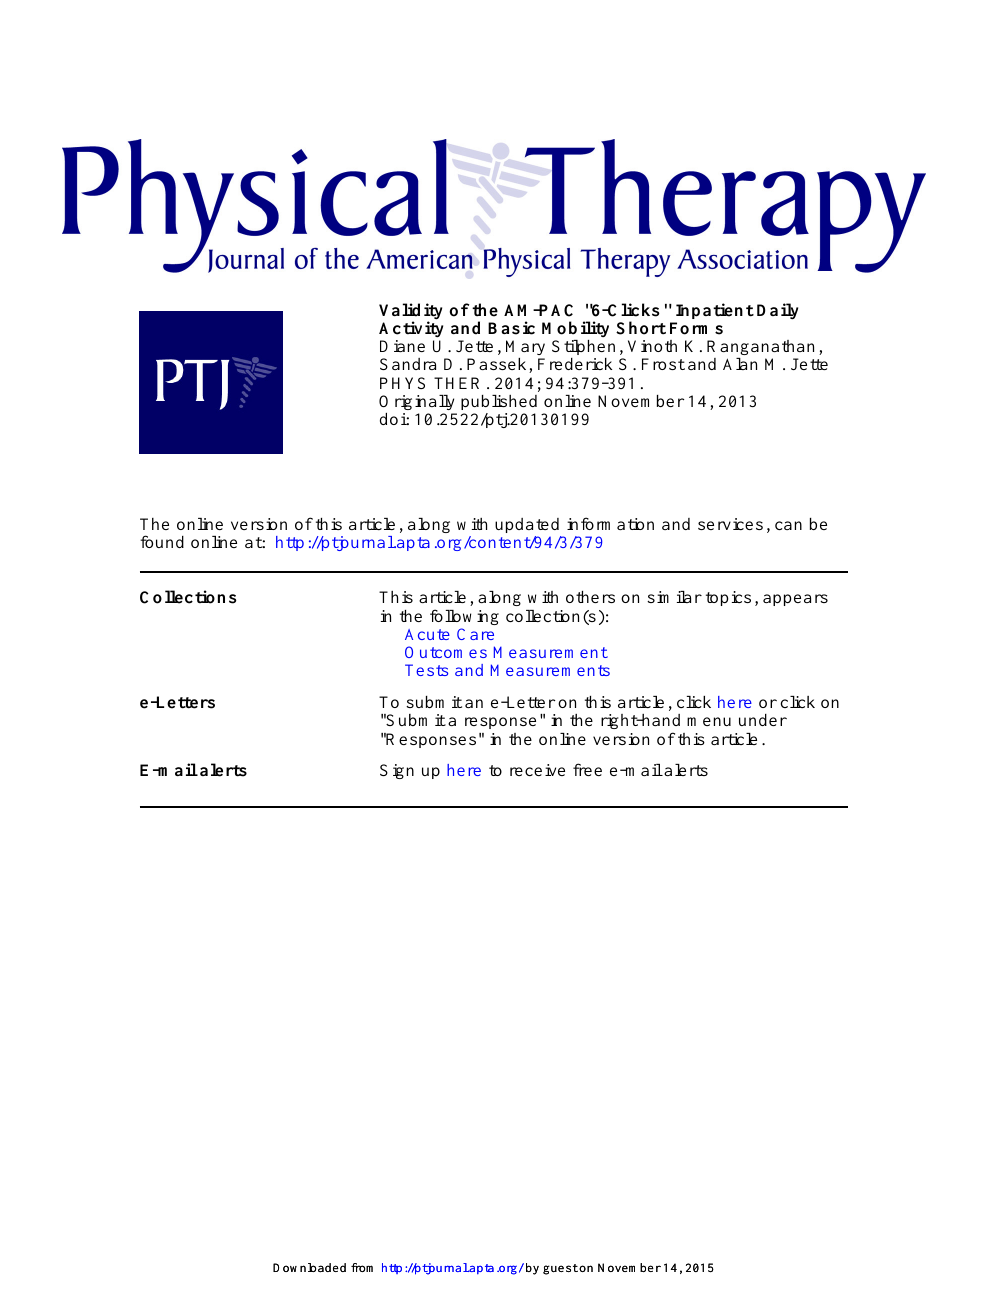 Validity Of The Am Pac 6 Clicks Inpatient Daily Activity And Basic